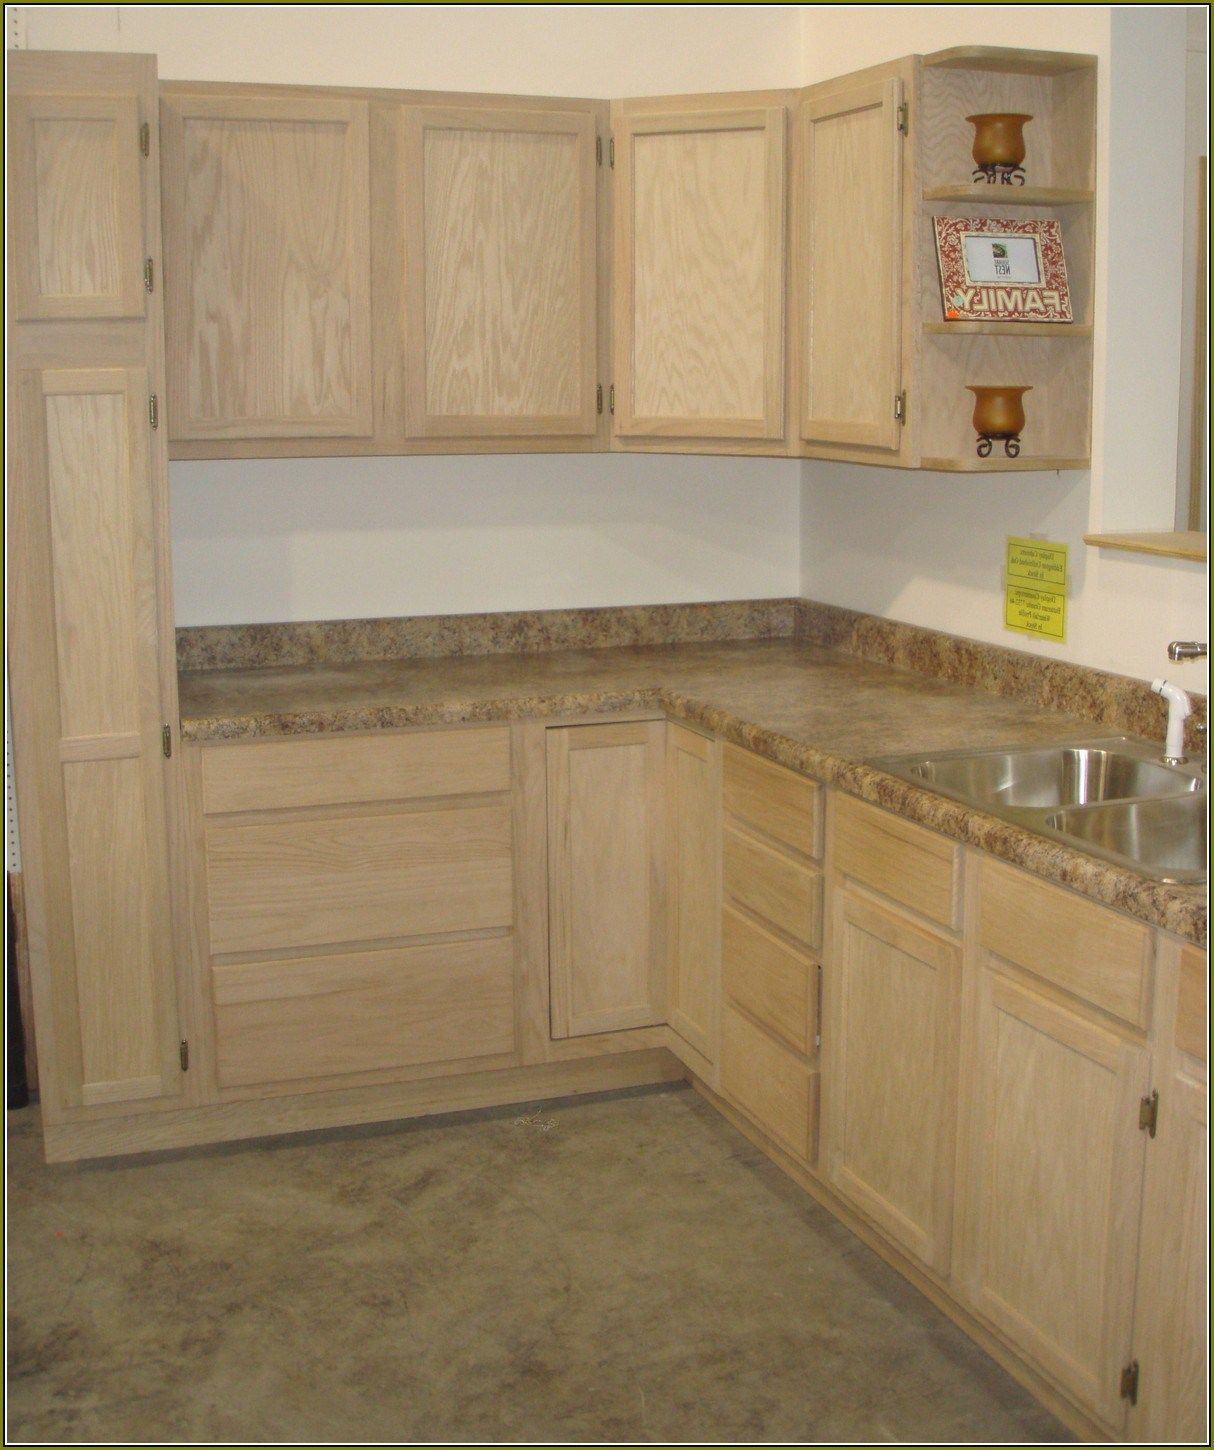 Best Home Improvements Refference Unfinished Pine Cabinets Home 400 x 300